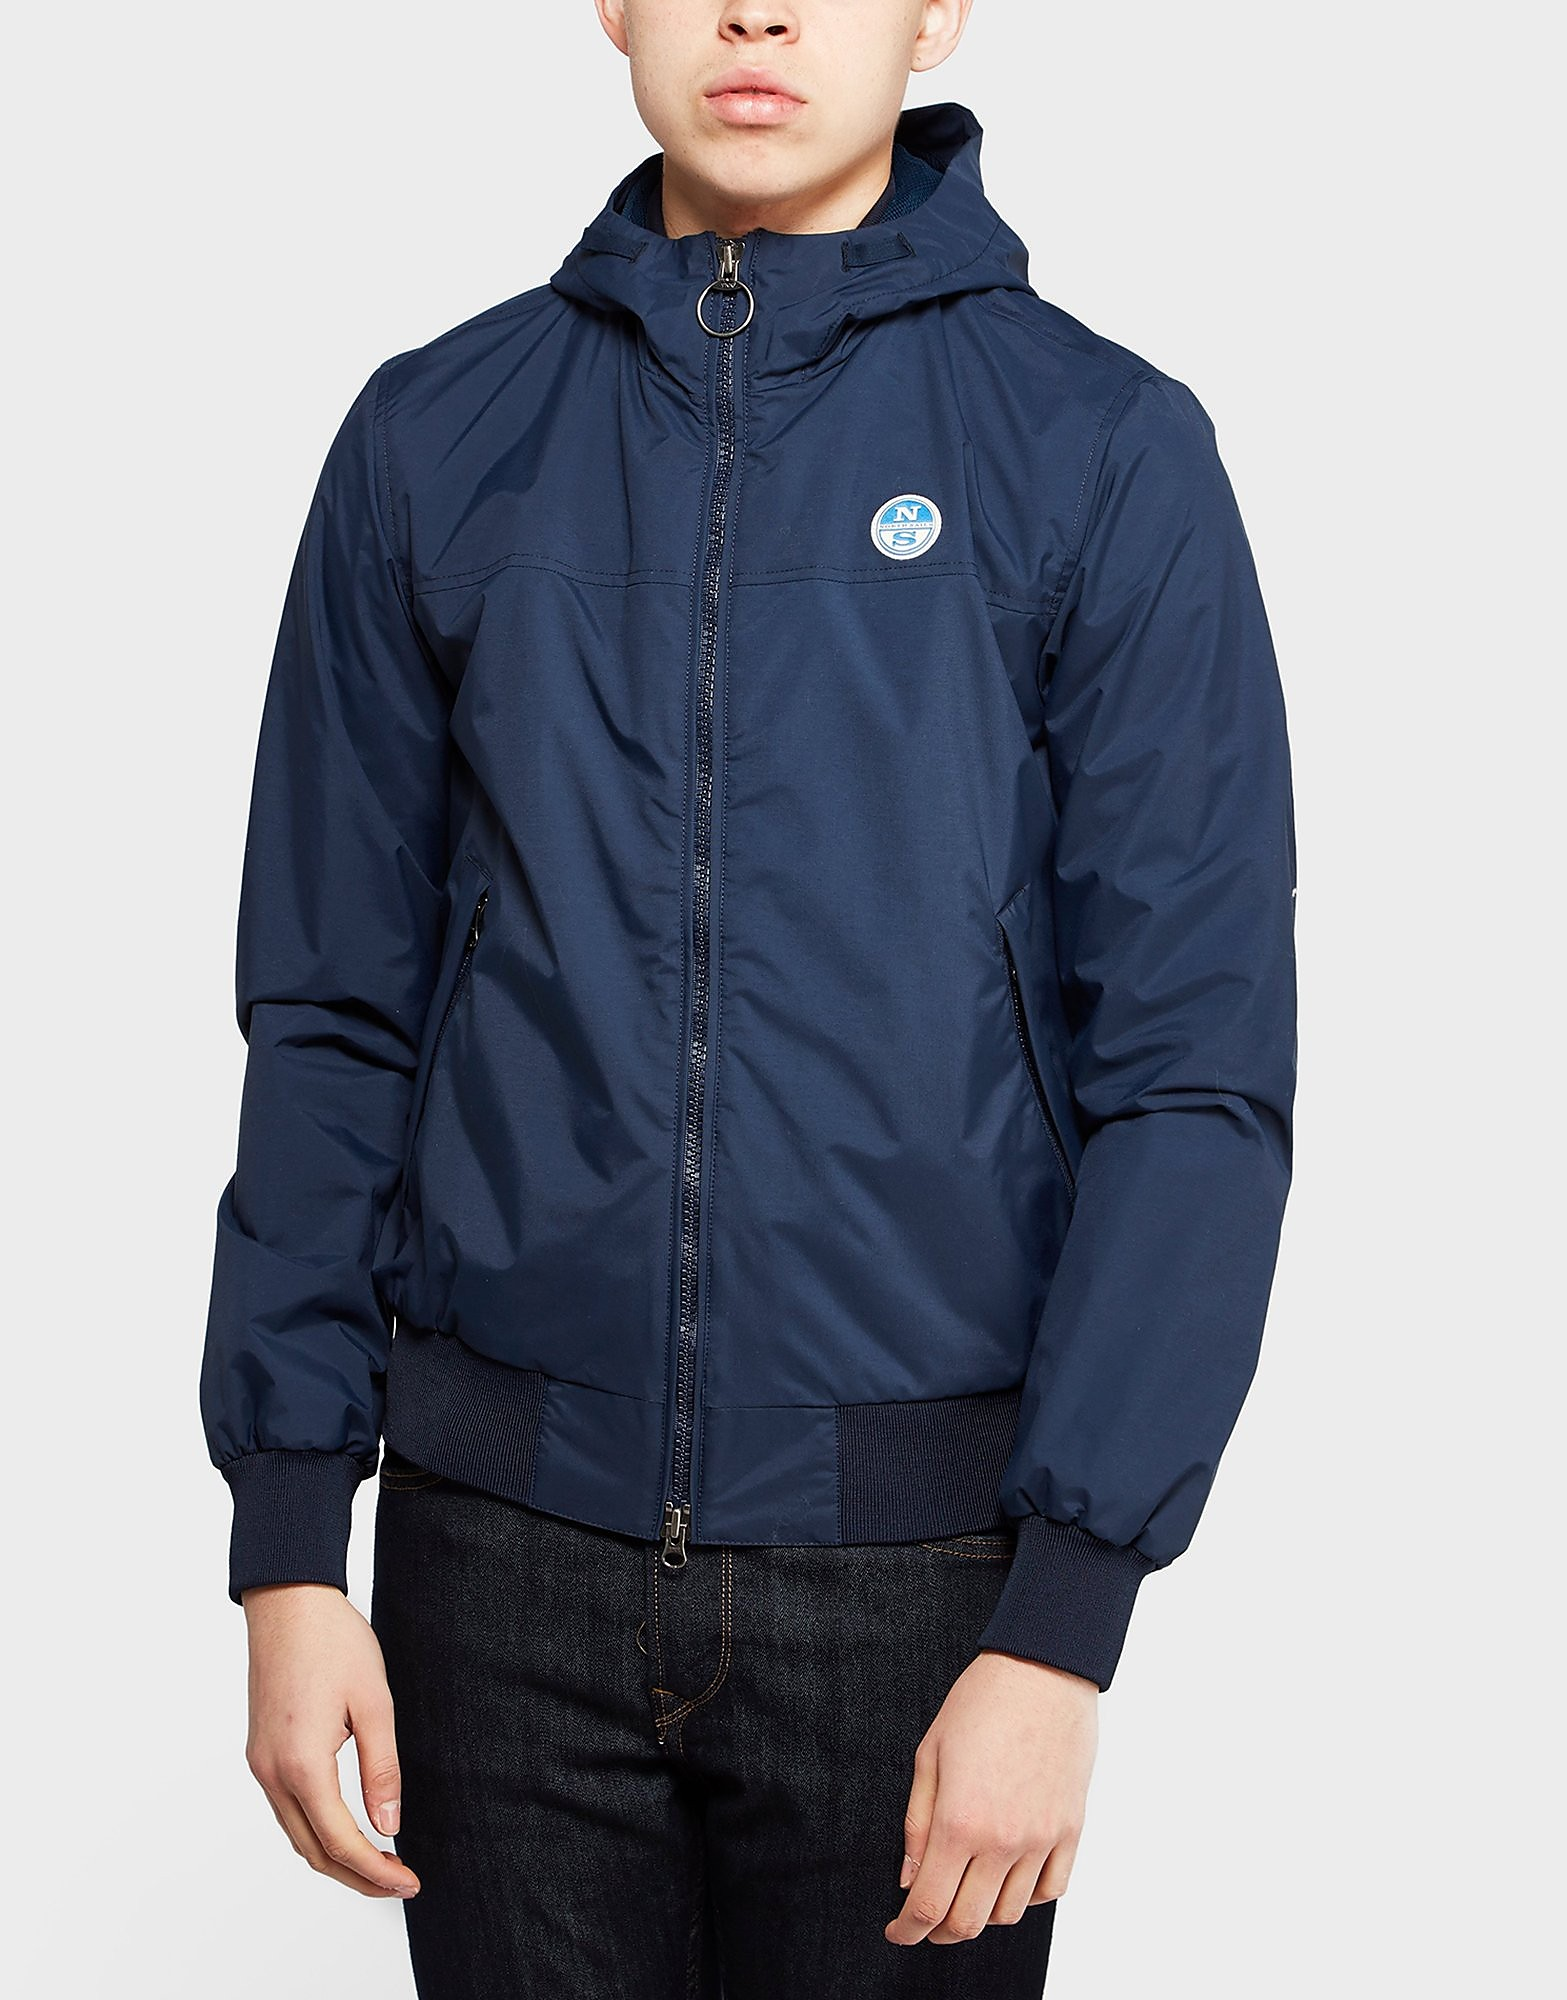 NORTH SAILS Dennis Hooded Lightweight Jacket